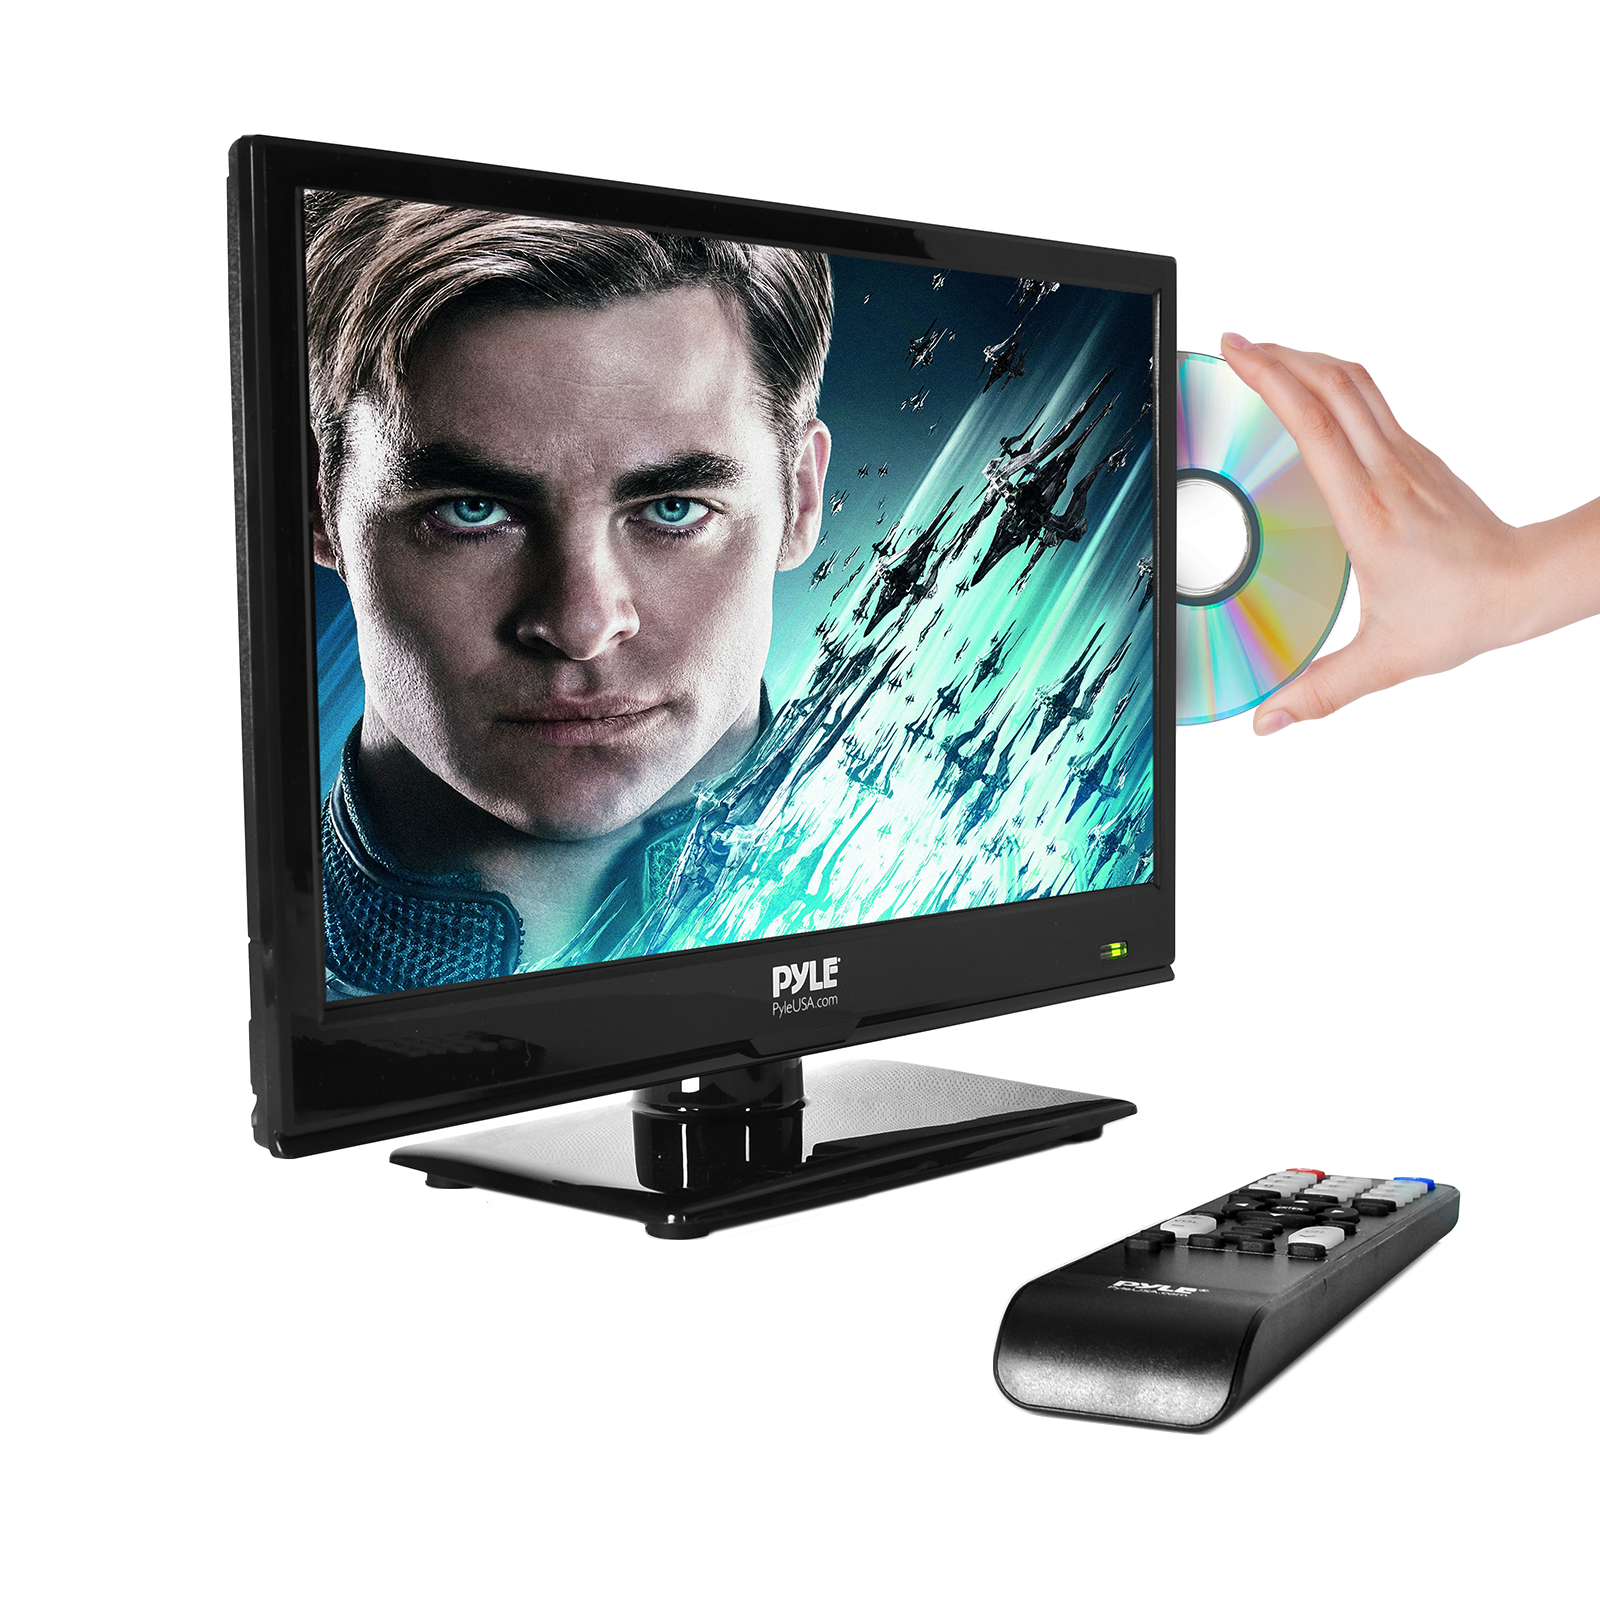 "15.6"" LED TV - HD Television with Built-in CD/DVD Player, 1080p Support"